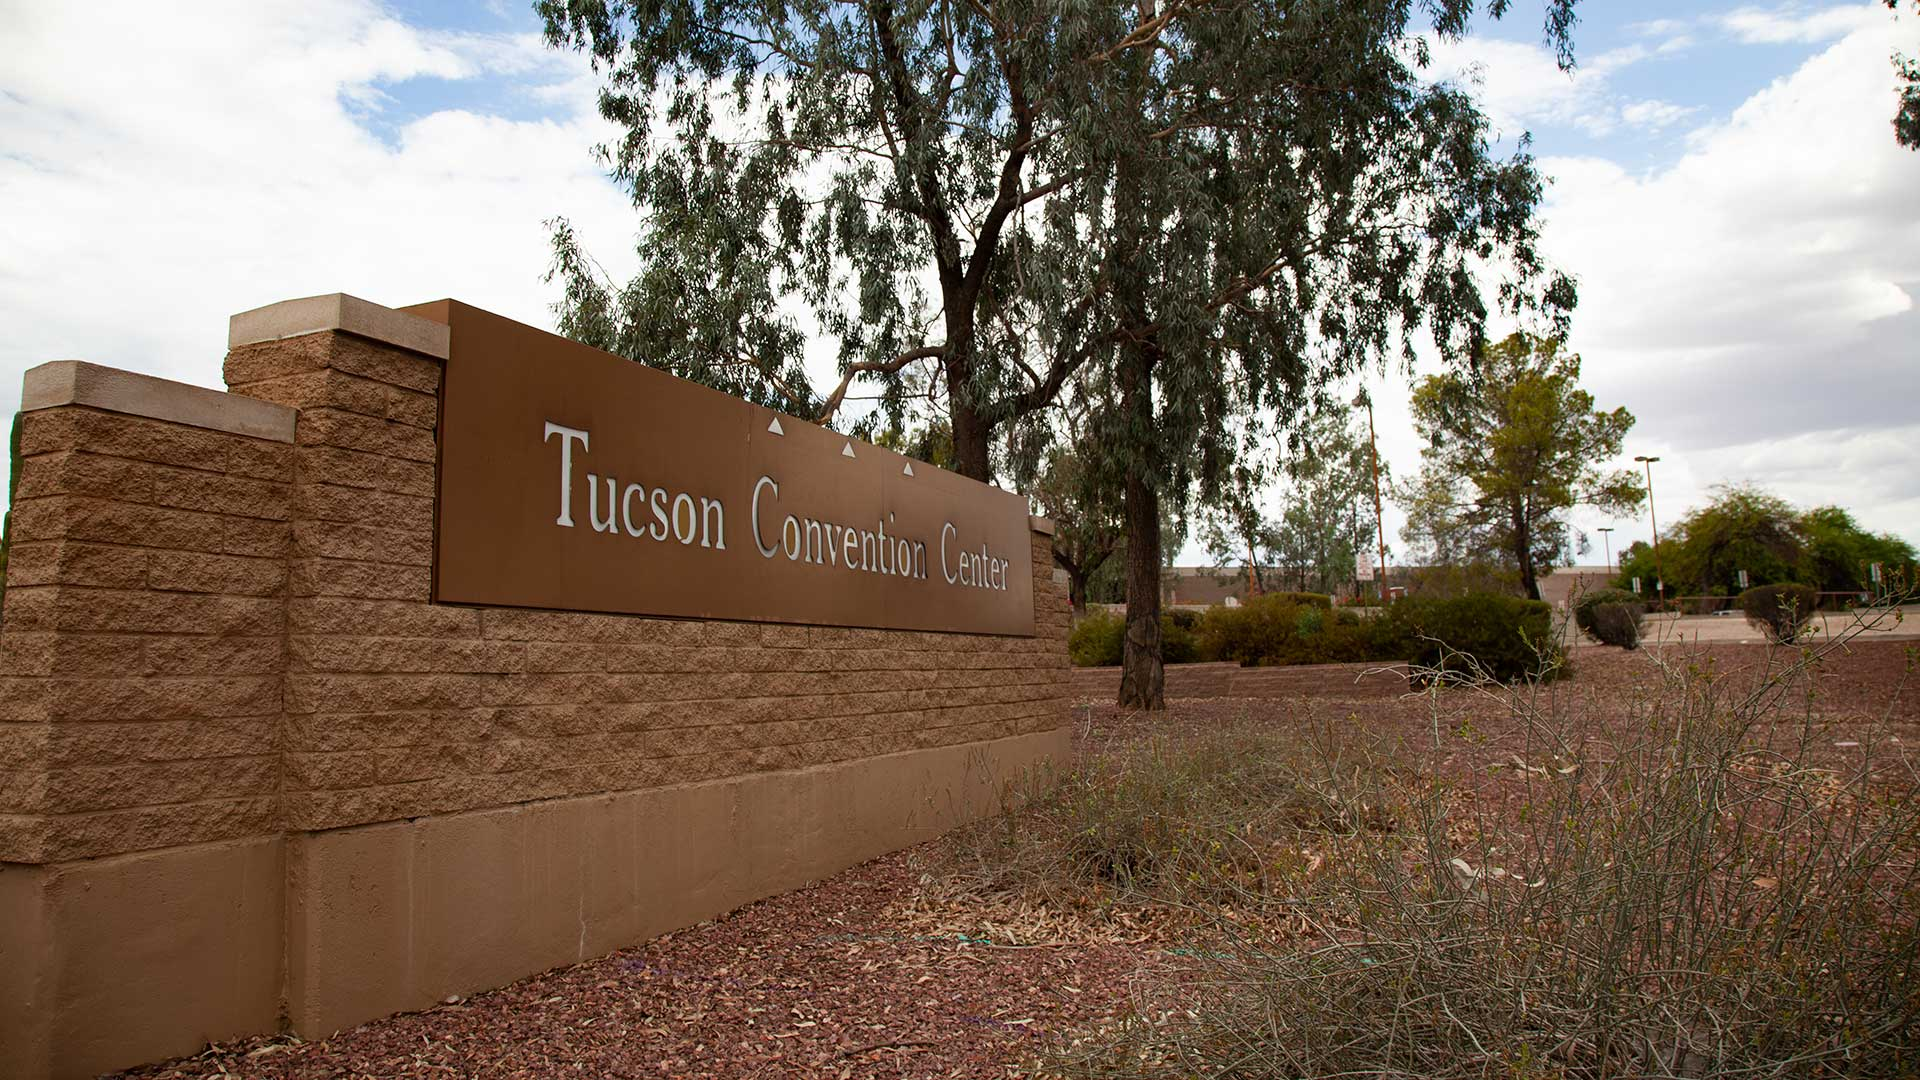 A sign outside of the Tucson Convention Center.